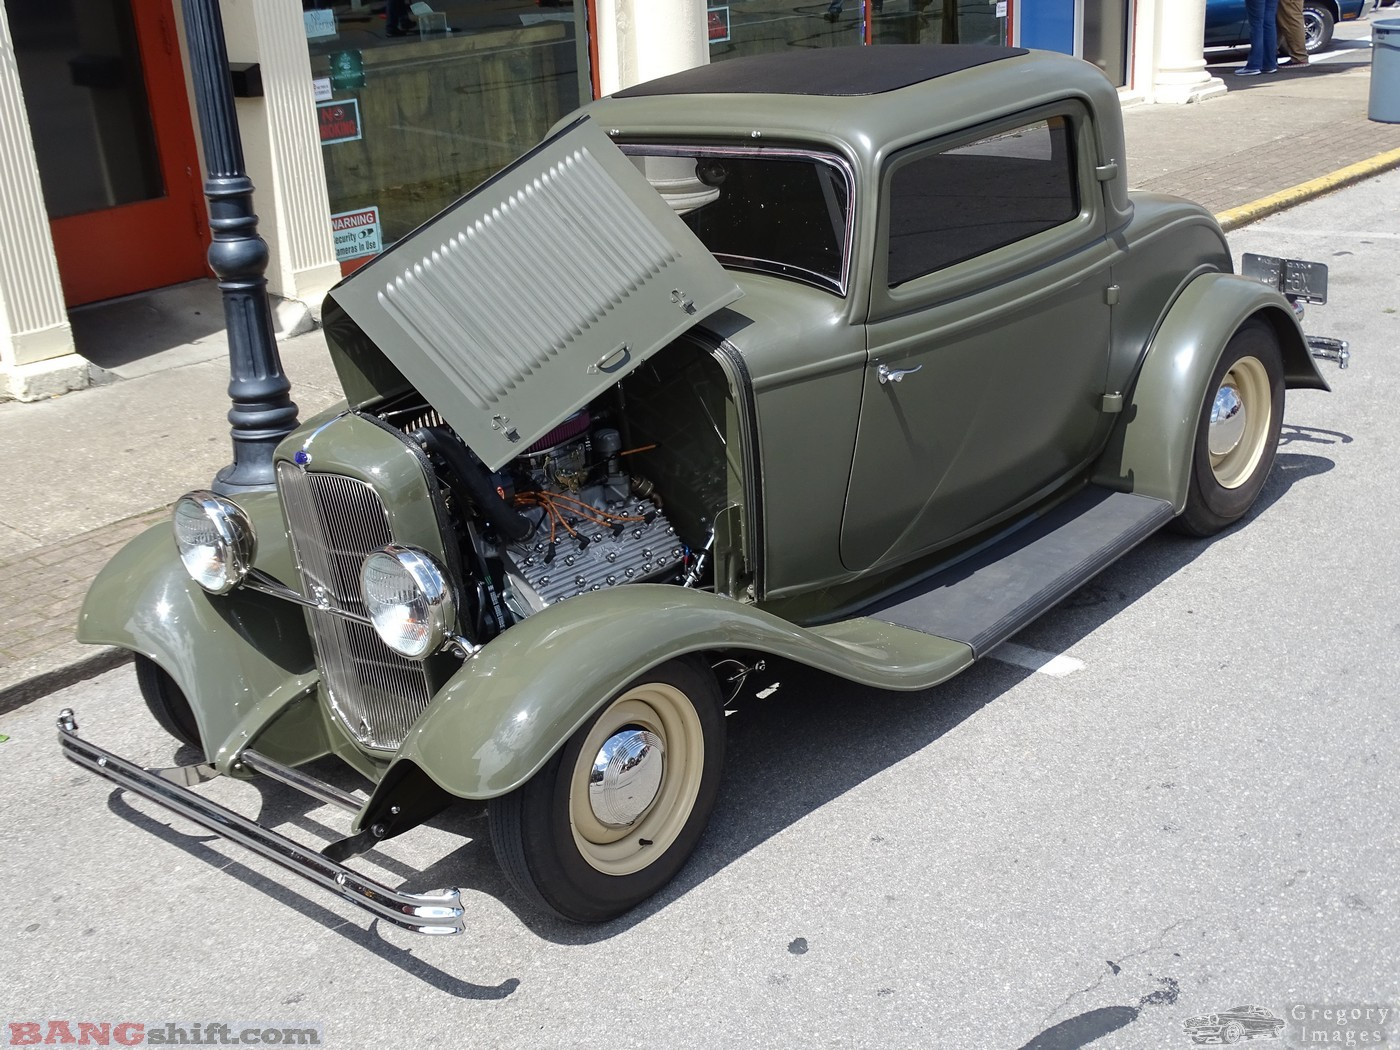 Somernites 2019 April Cruise Photo Coverage: Cars and Trucks From The 1950s and Older! History, Styling, and Coolness Galore